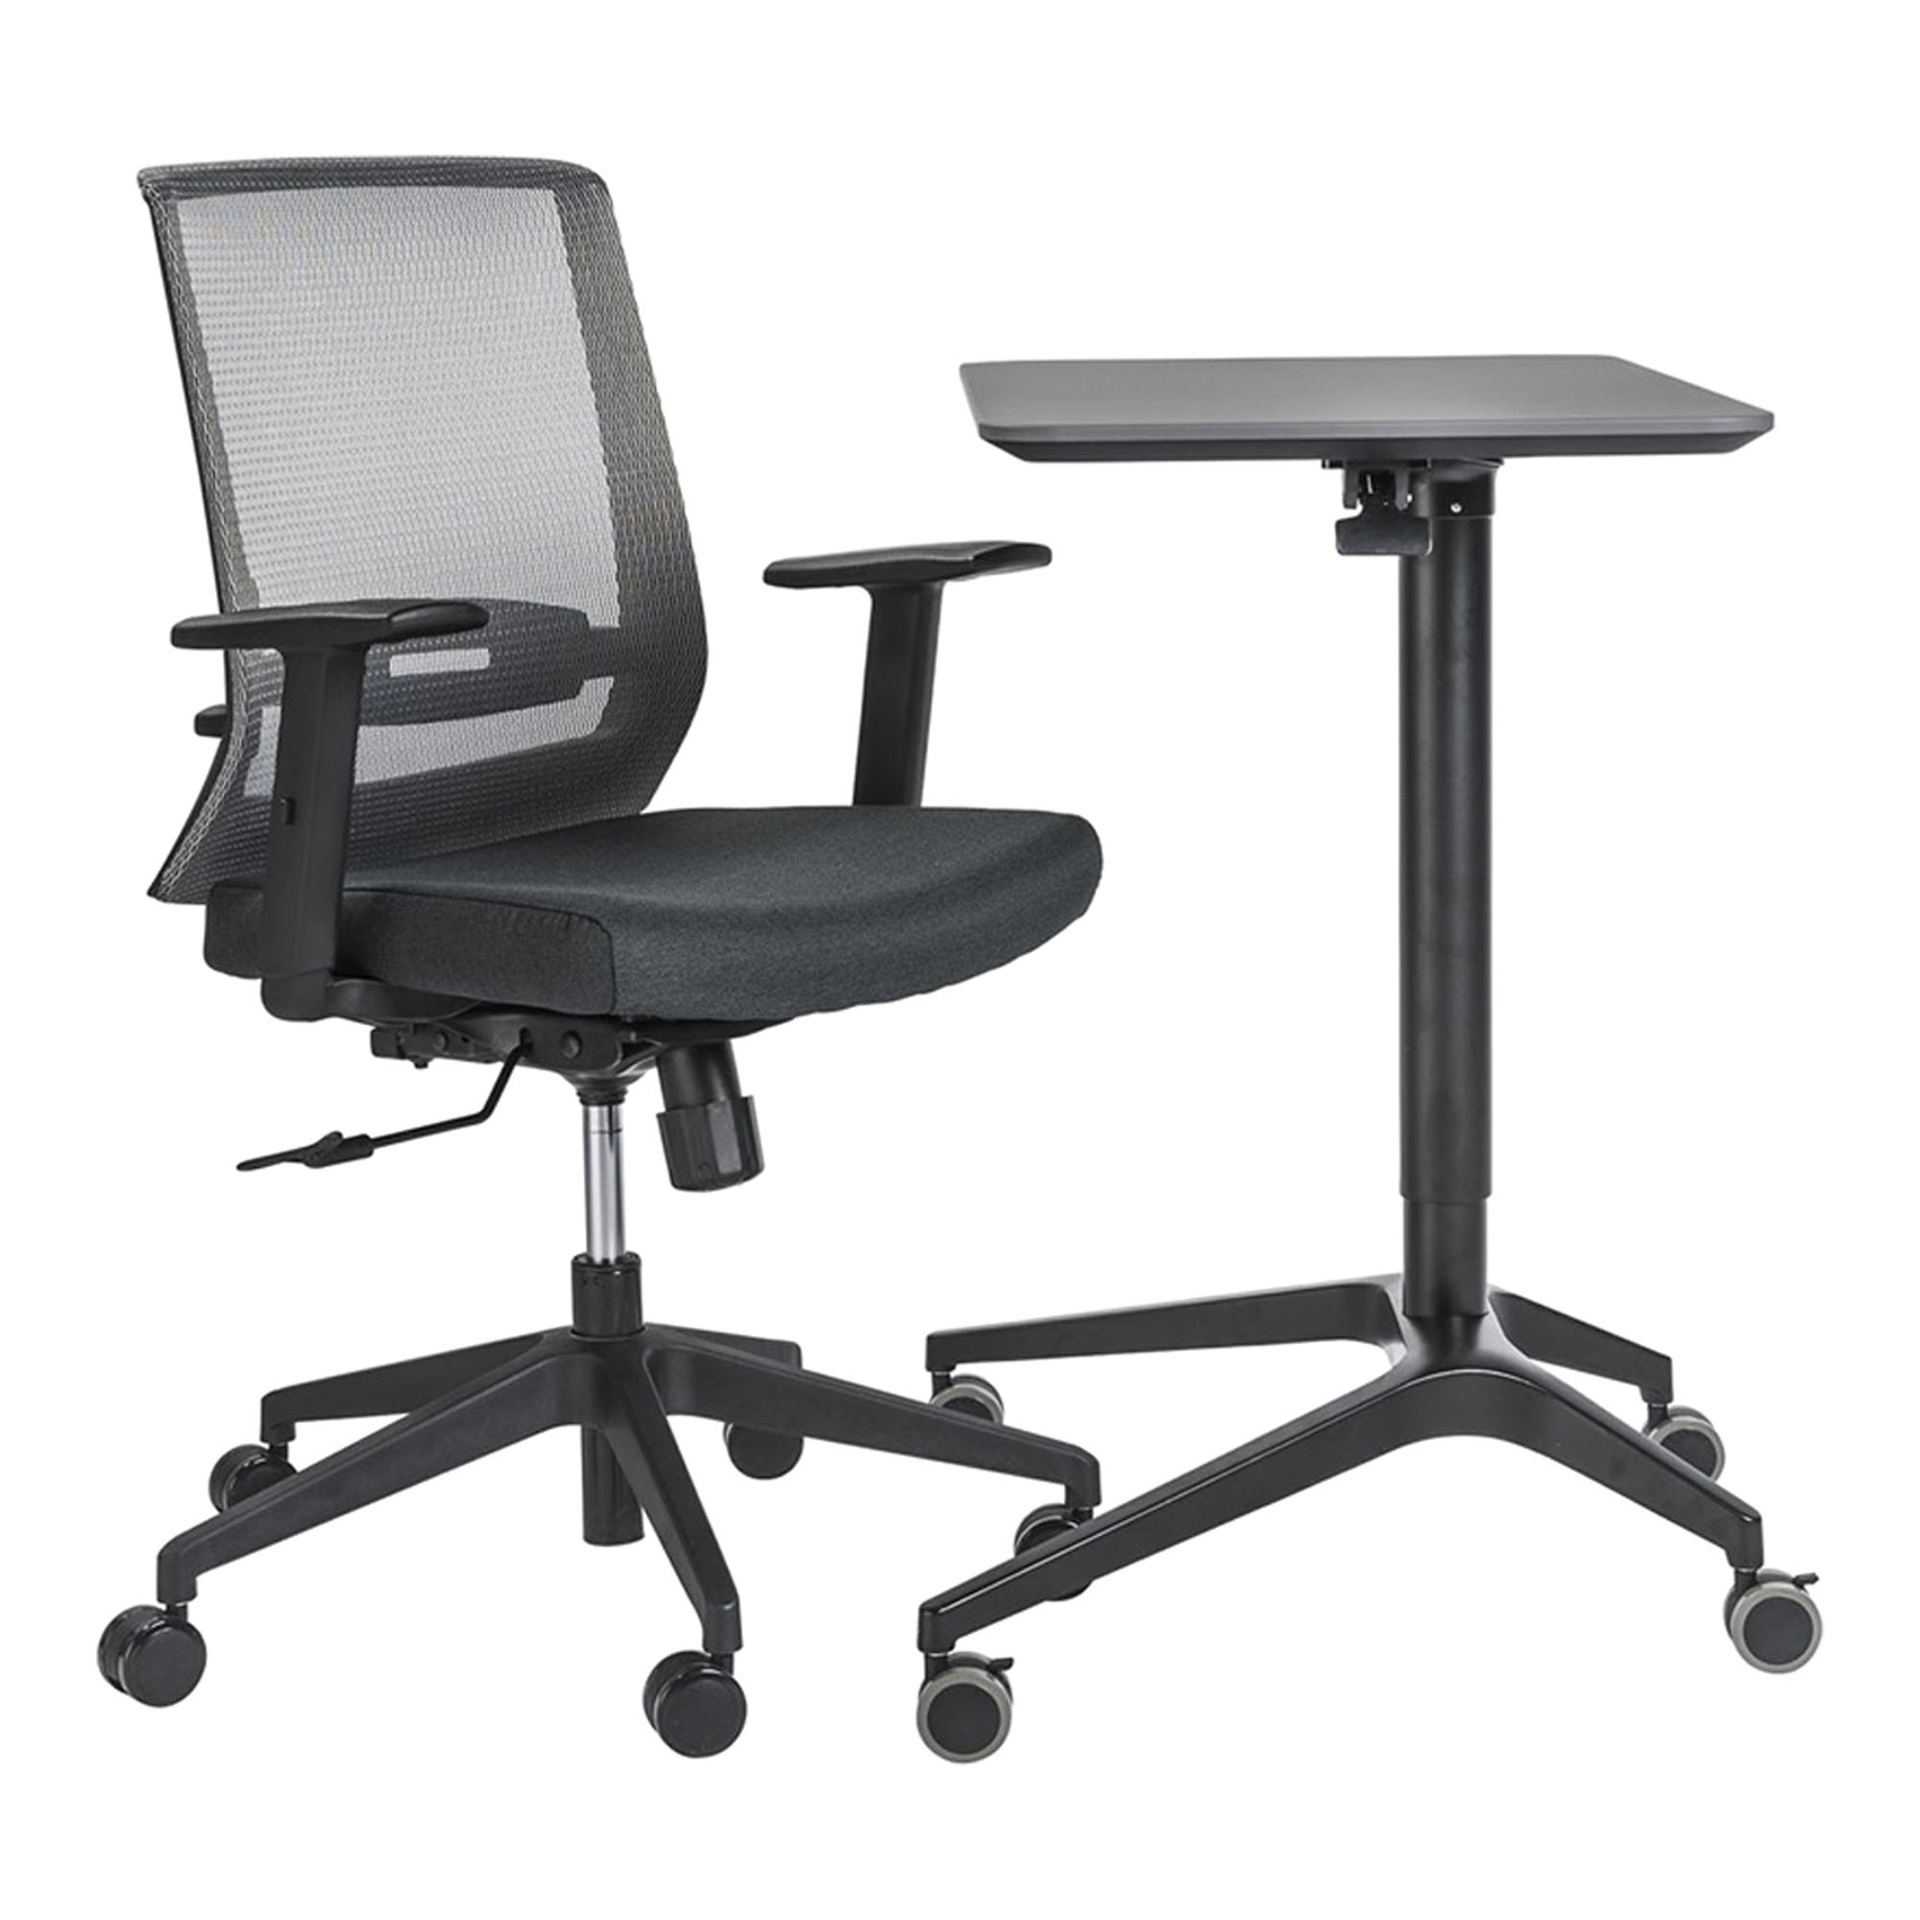 How To Adjust Office Chair Herning Height Adjust Desk